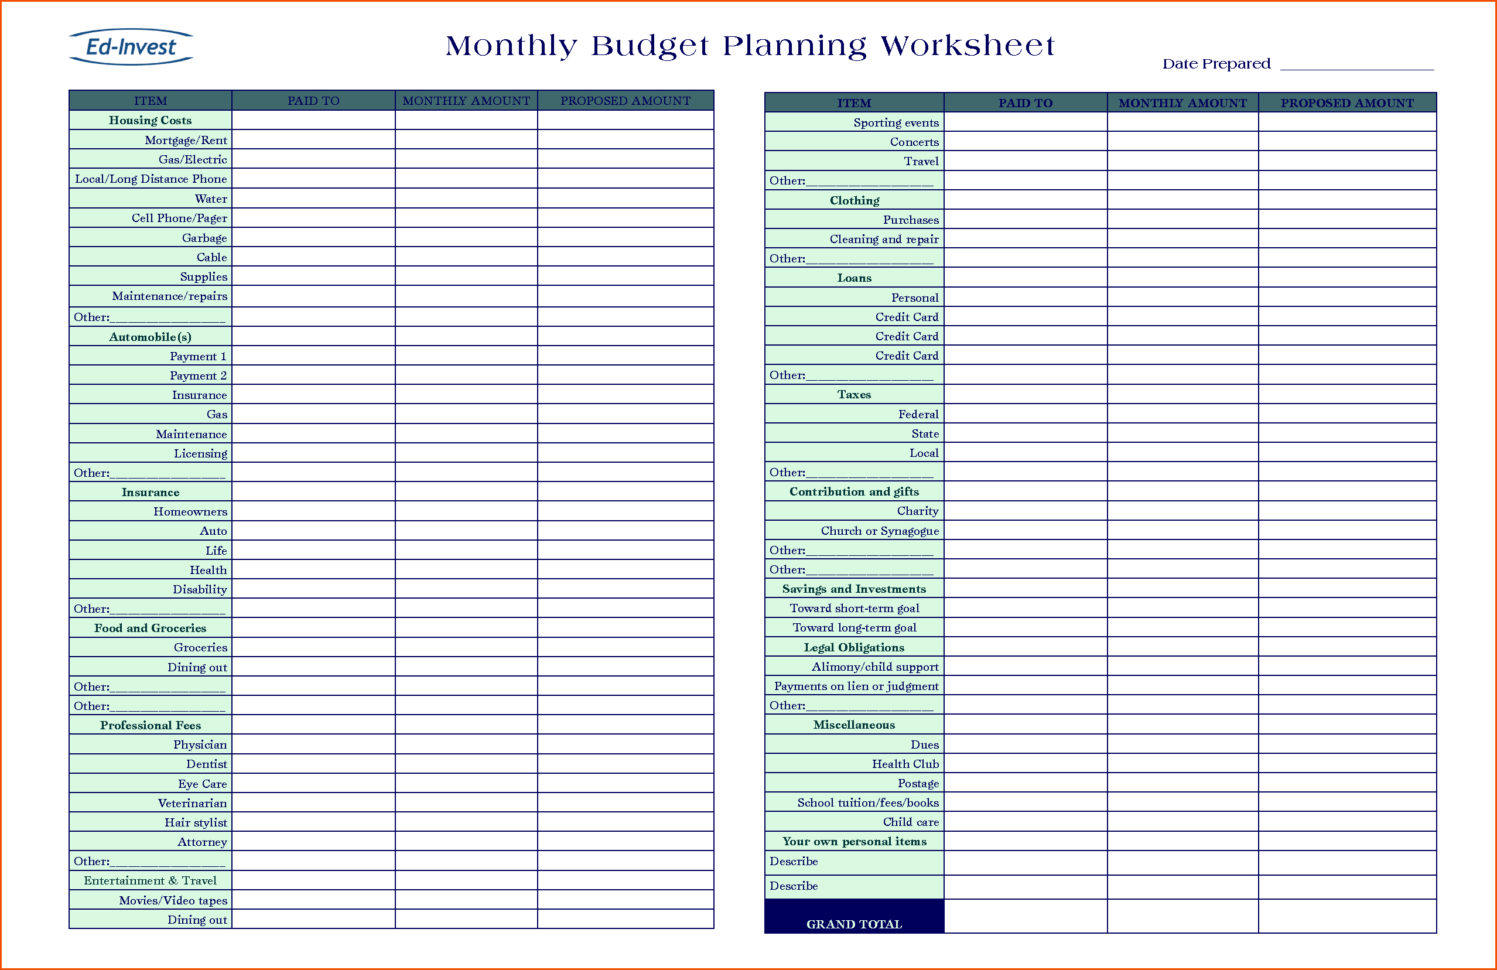 Monthly Budget Planner Spreadsheet With Budget Planning Spreadsheet Invoice Template Business Excel Sheet